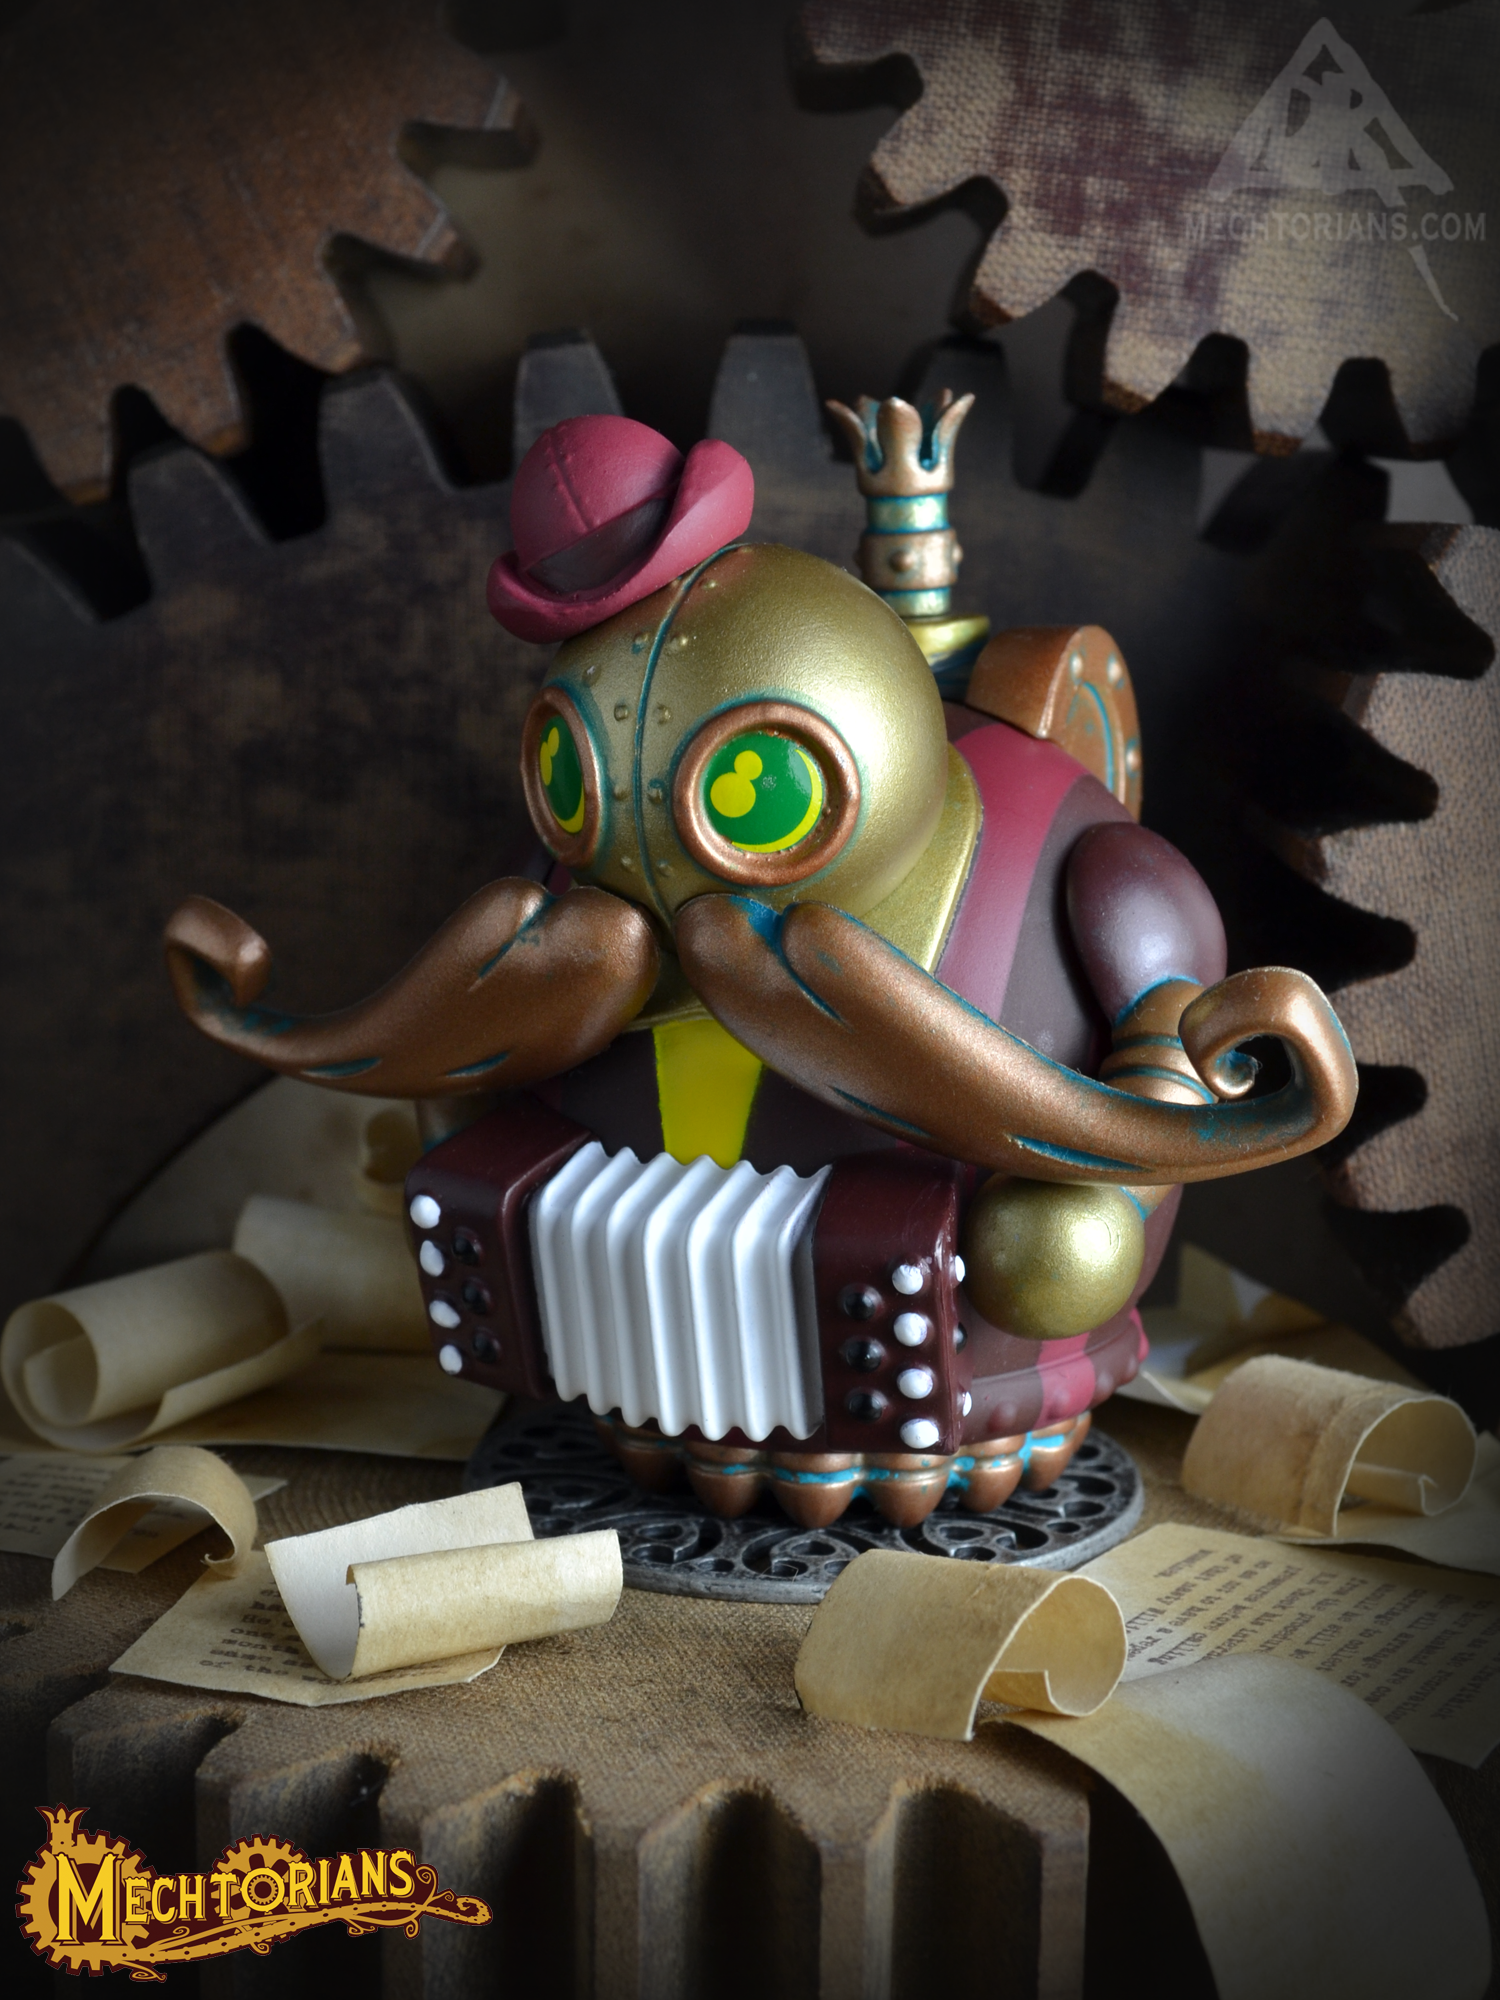 Doktor A's Mini Mechtorians vinyl figure Series 2 with Kidrobot. Maurice Jaques.